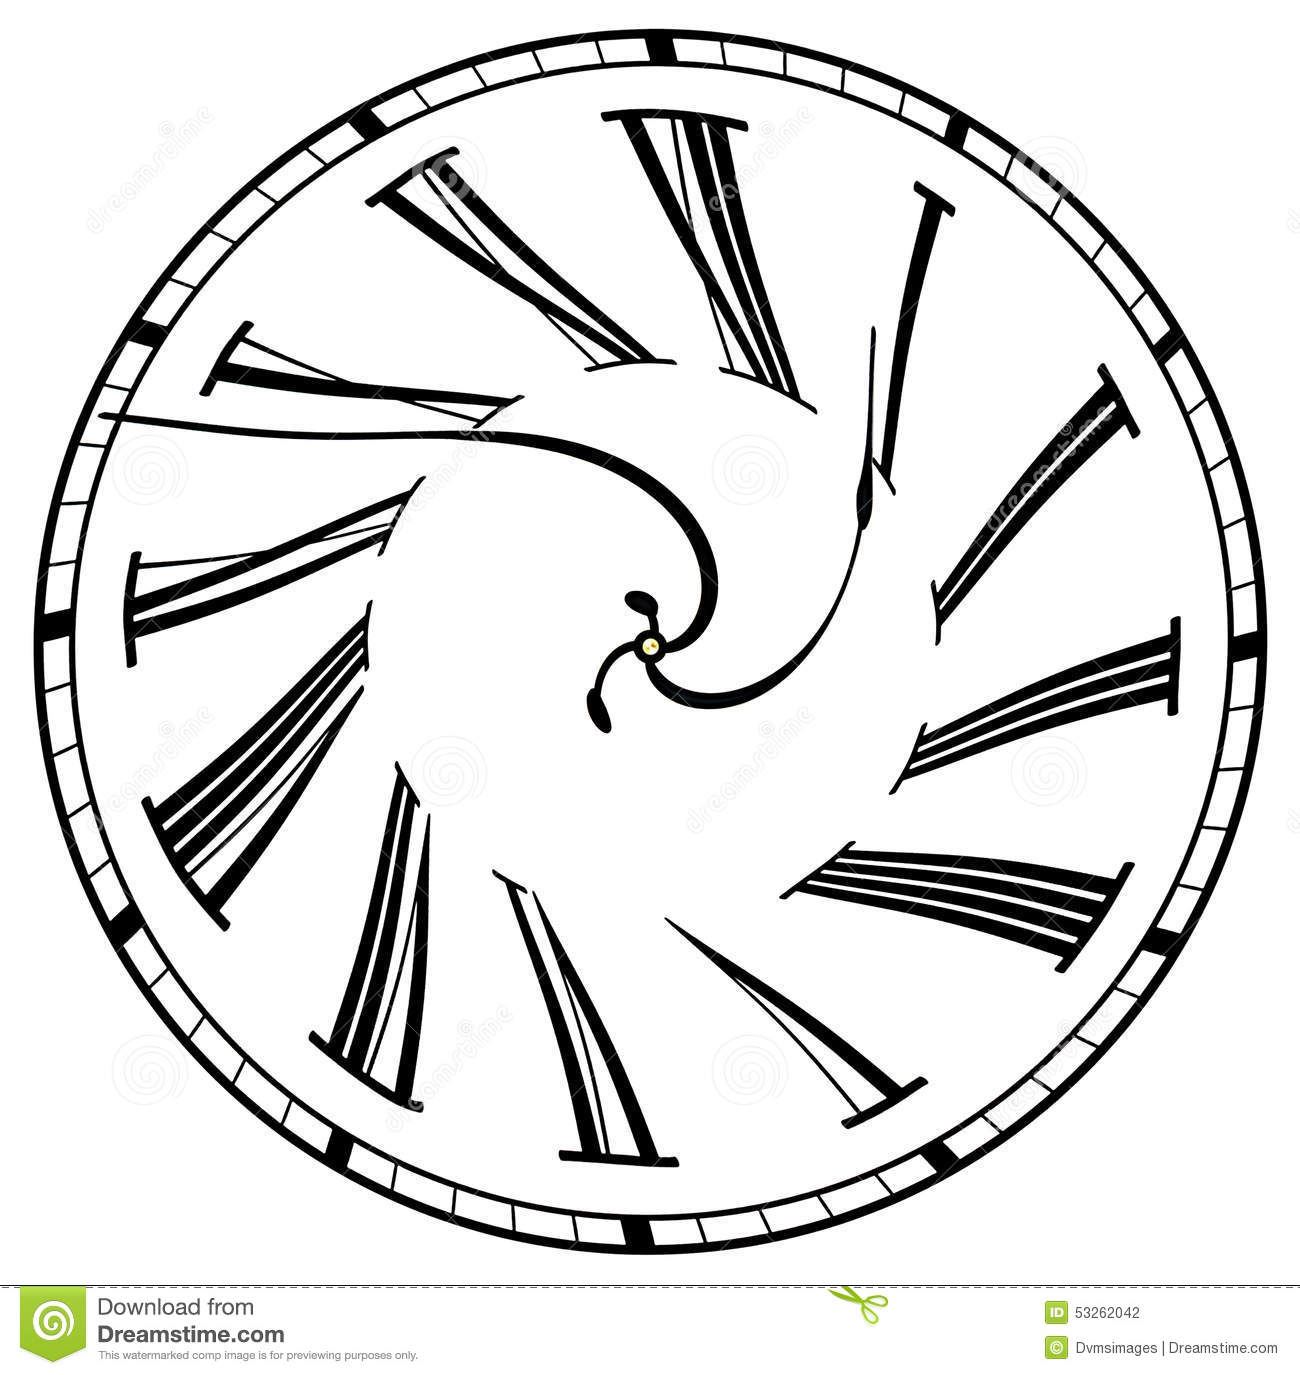 Line Drawing Clock Face : Surreal clock face stock illustration image of wheel